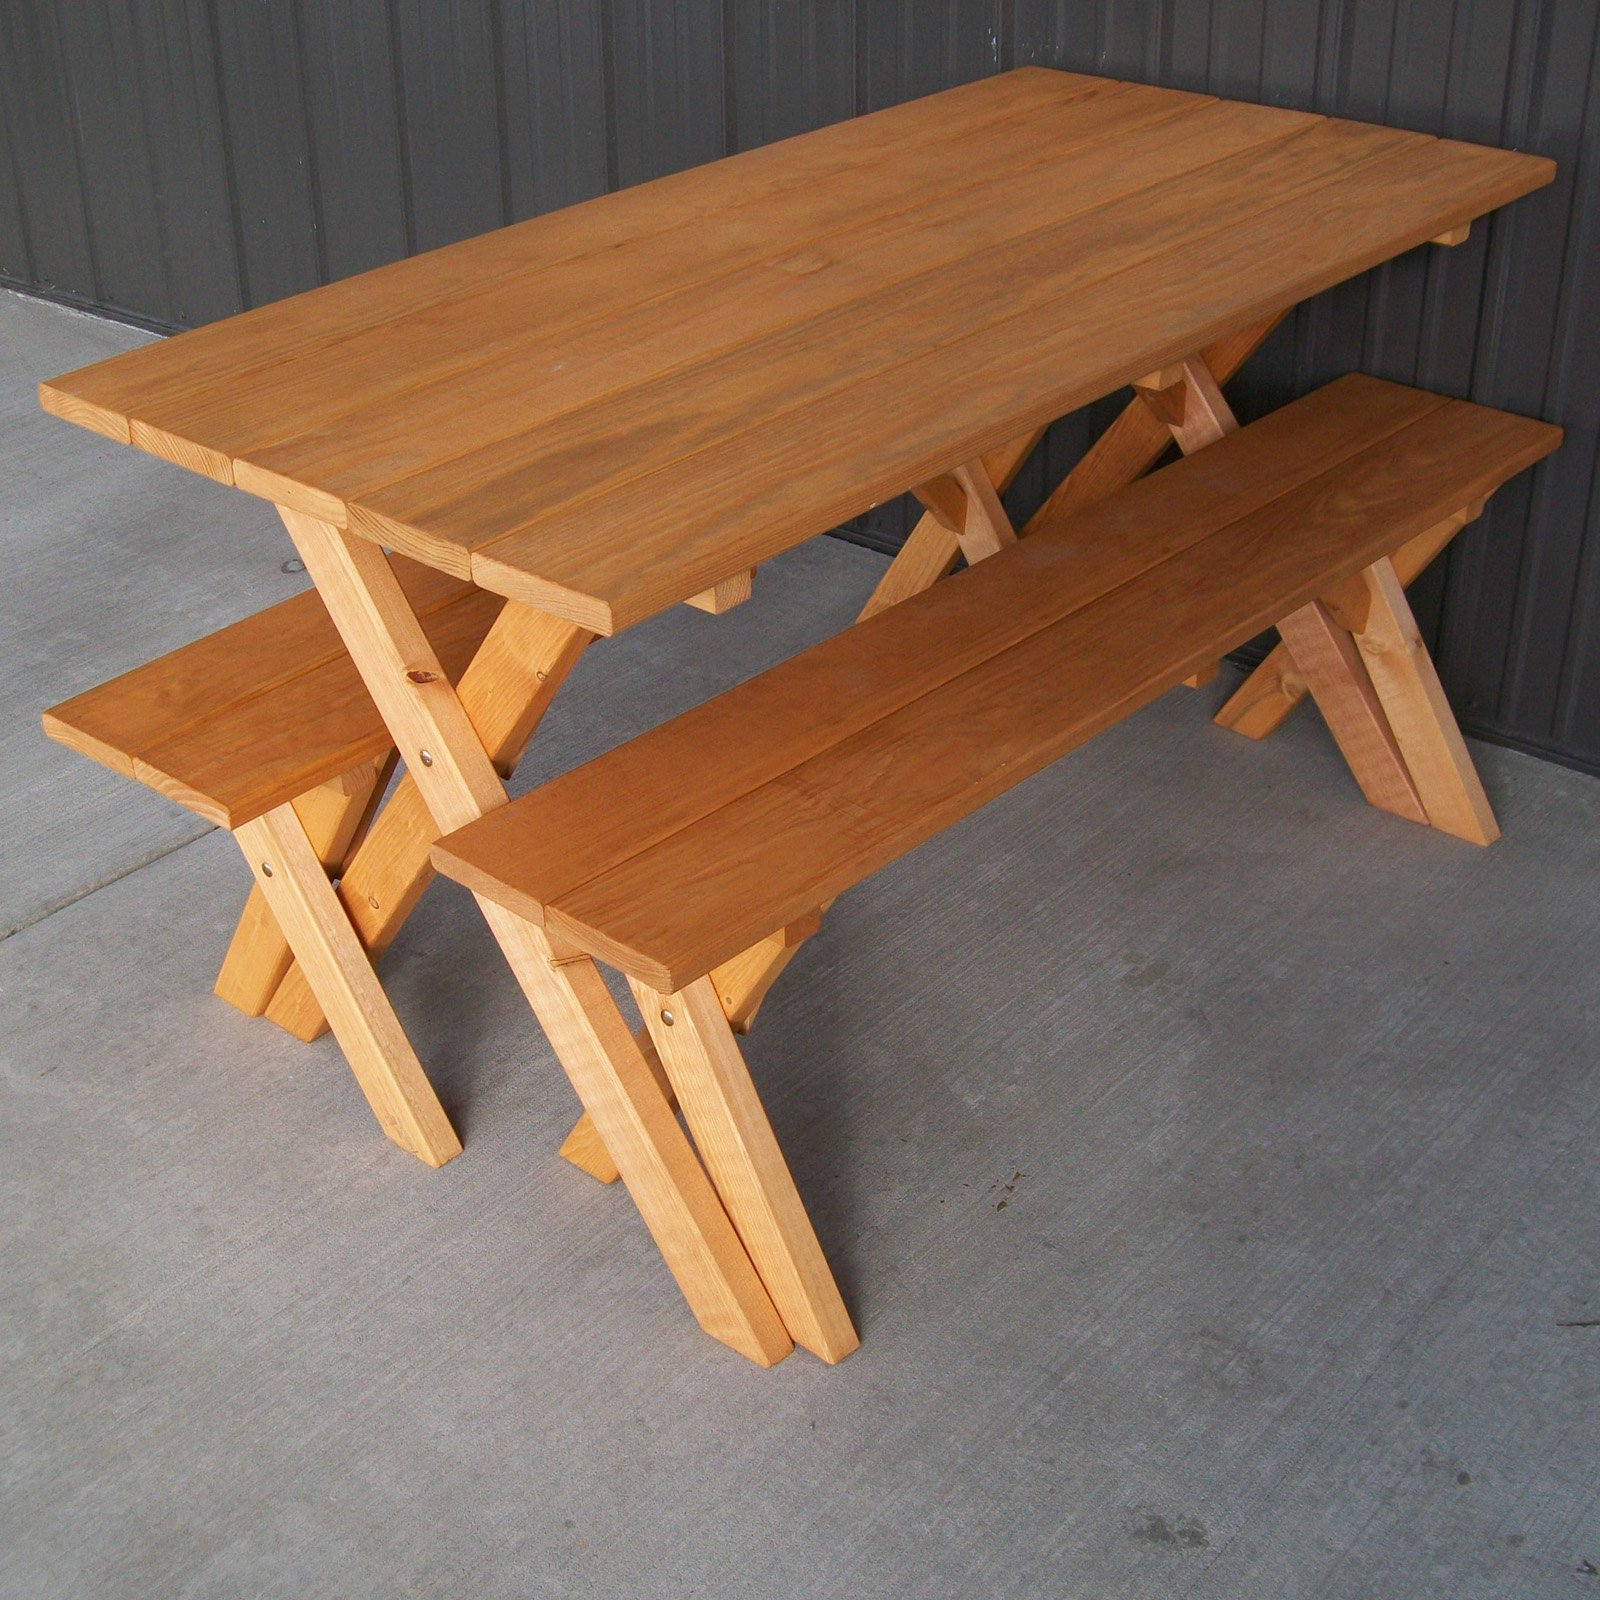 Picnic bench 1 piece folding picnic table woodworking for Cross leg table plans